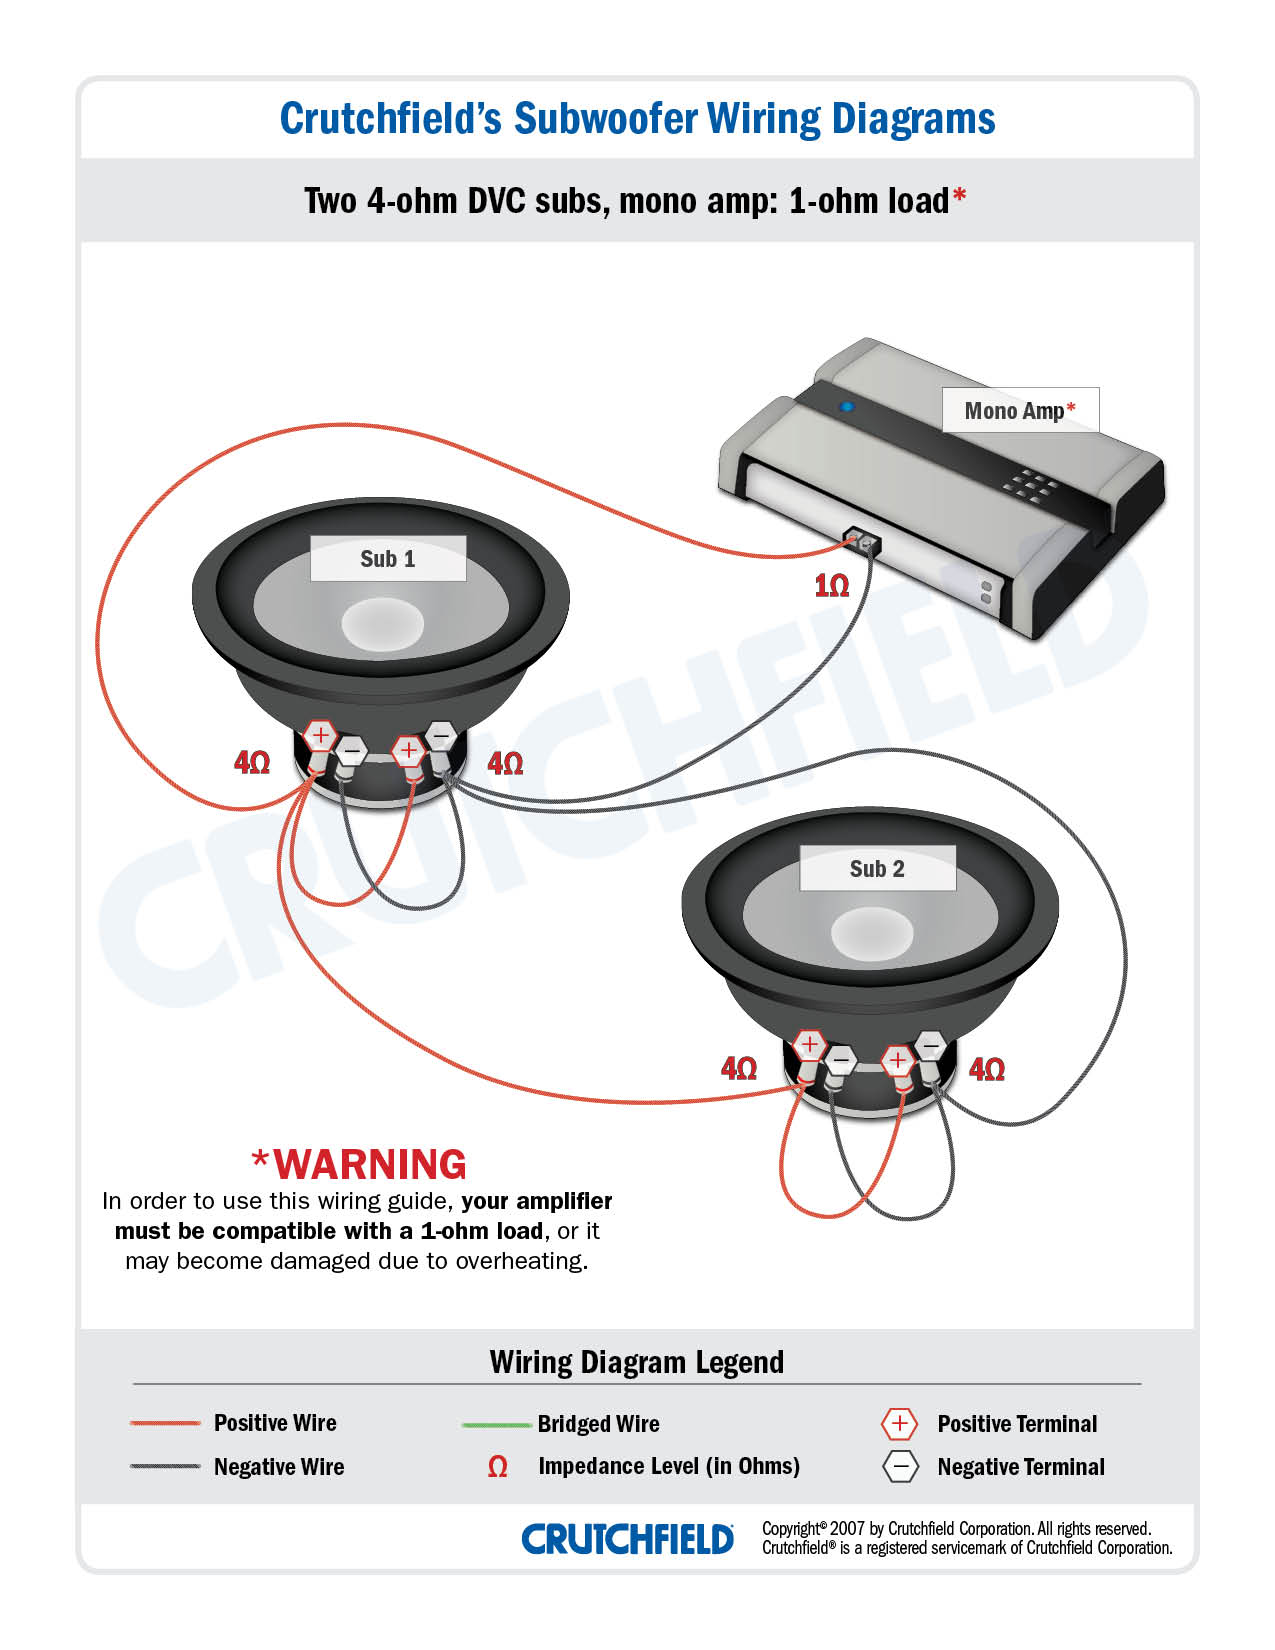 Subwoofer Wiring Diagrams How To Wire Your Subs X12 Diagram In Case The 4 Ohm Scheme Is Only Safe Way Connect That Gear Together